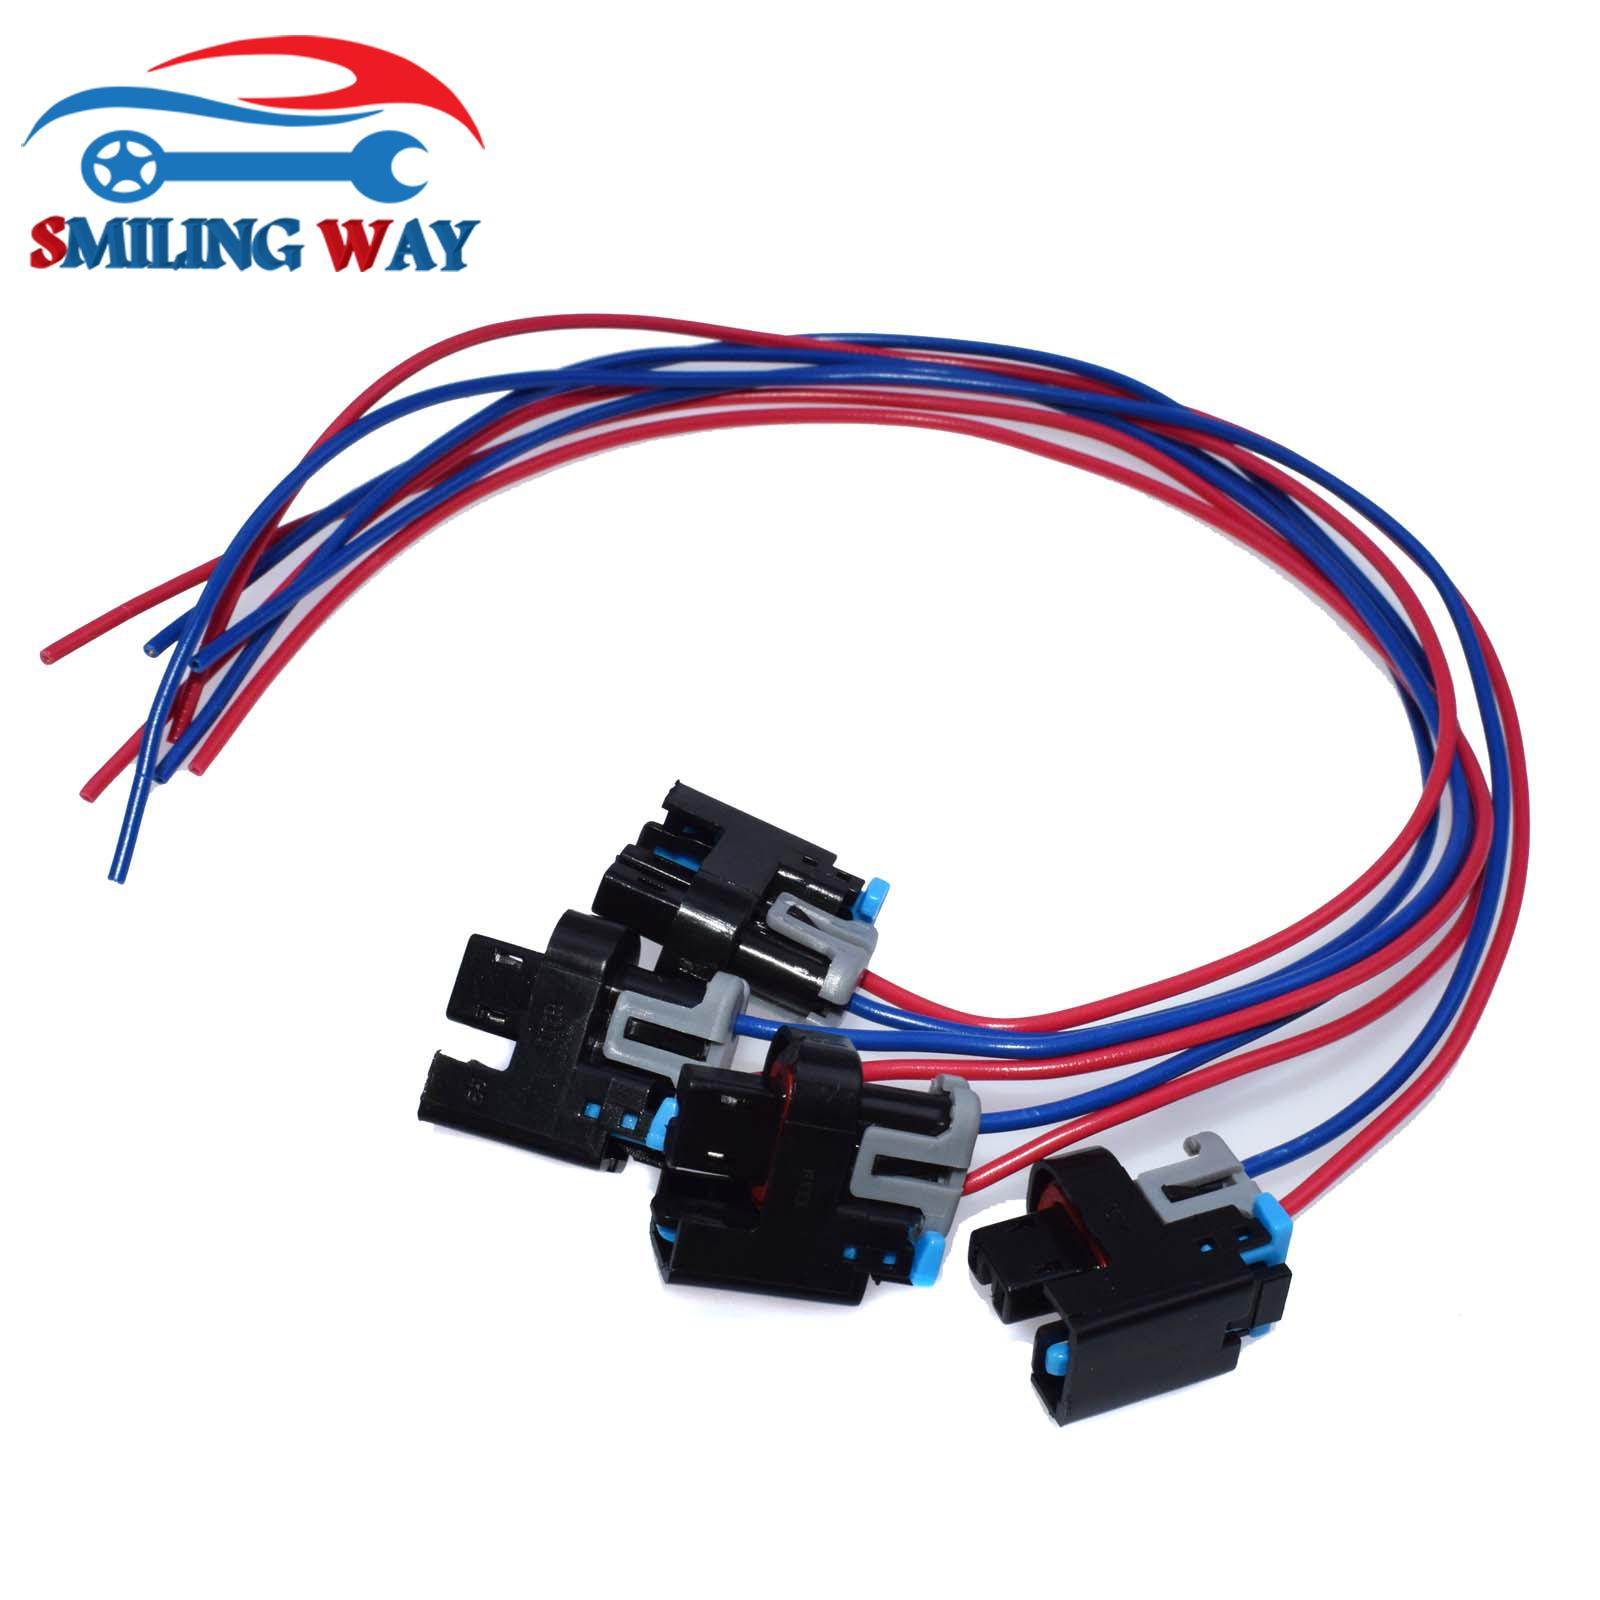 fuel injector wiring harness connector pigtail cable plug for chevrolet gmc  pontiac buick saturn isuzu oldsmobile cadillac fuel inject. controls &  parts  - aliexpress  aliexpress